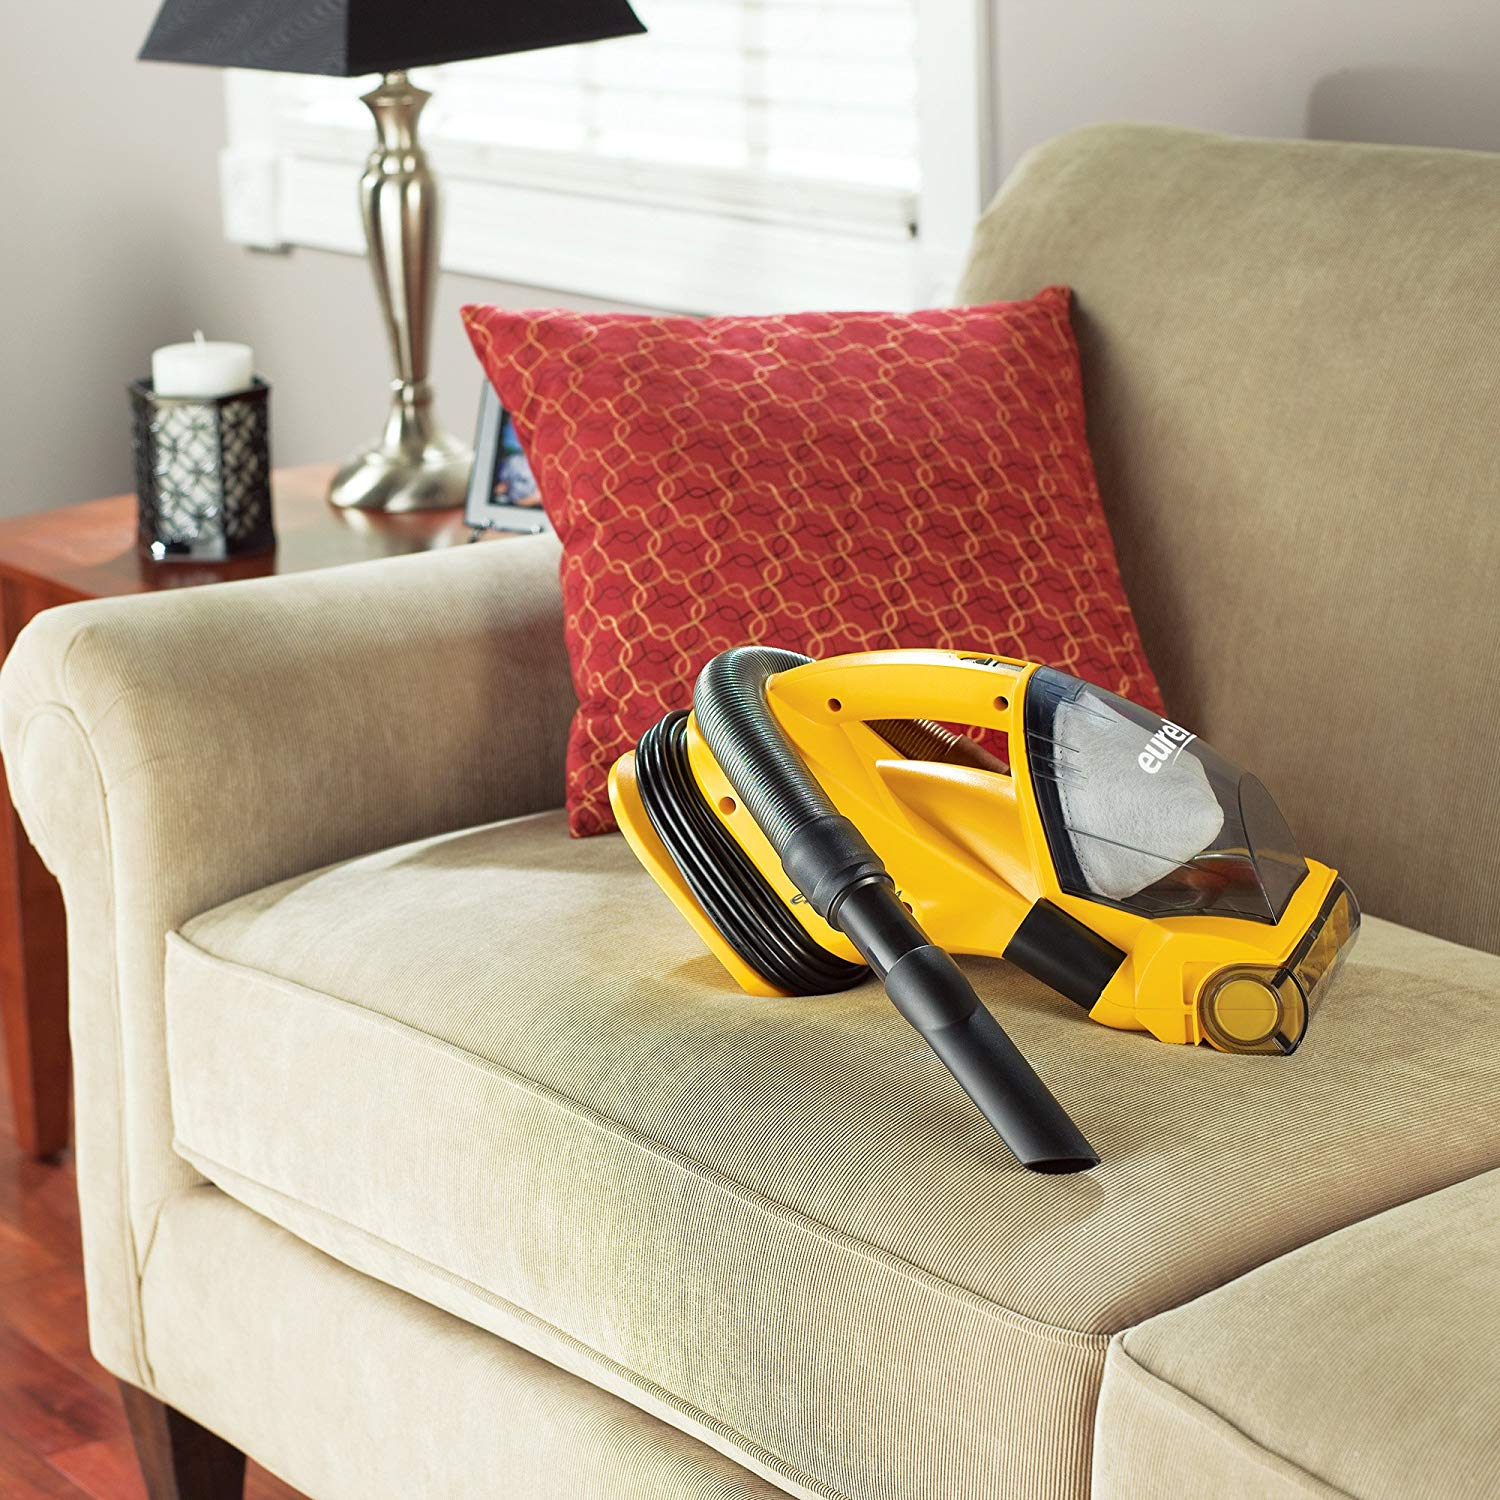 Eureka Vacuum cleaning couch